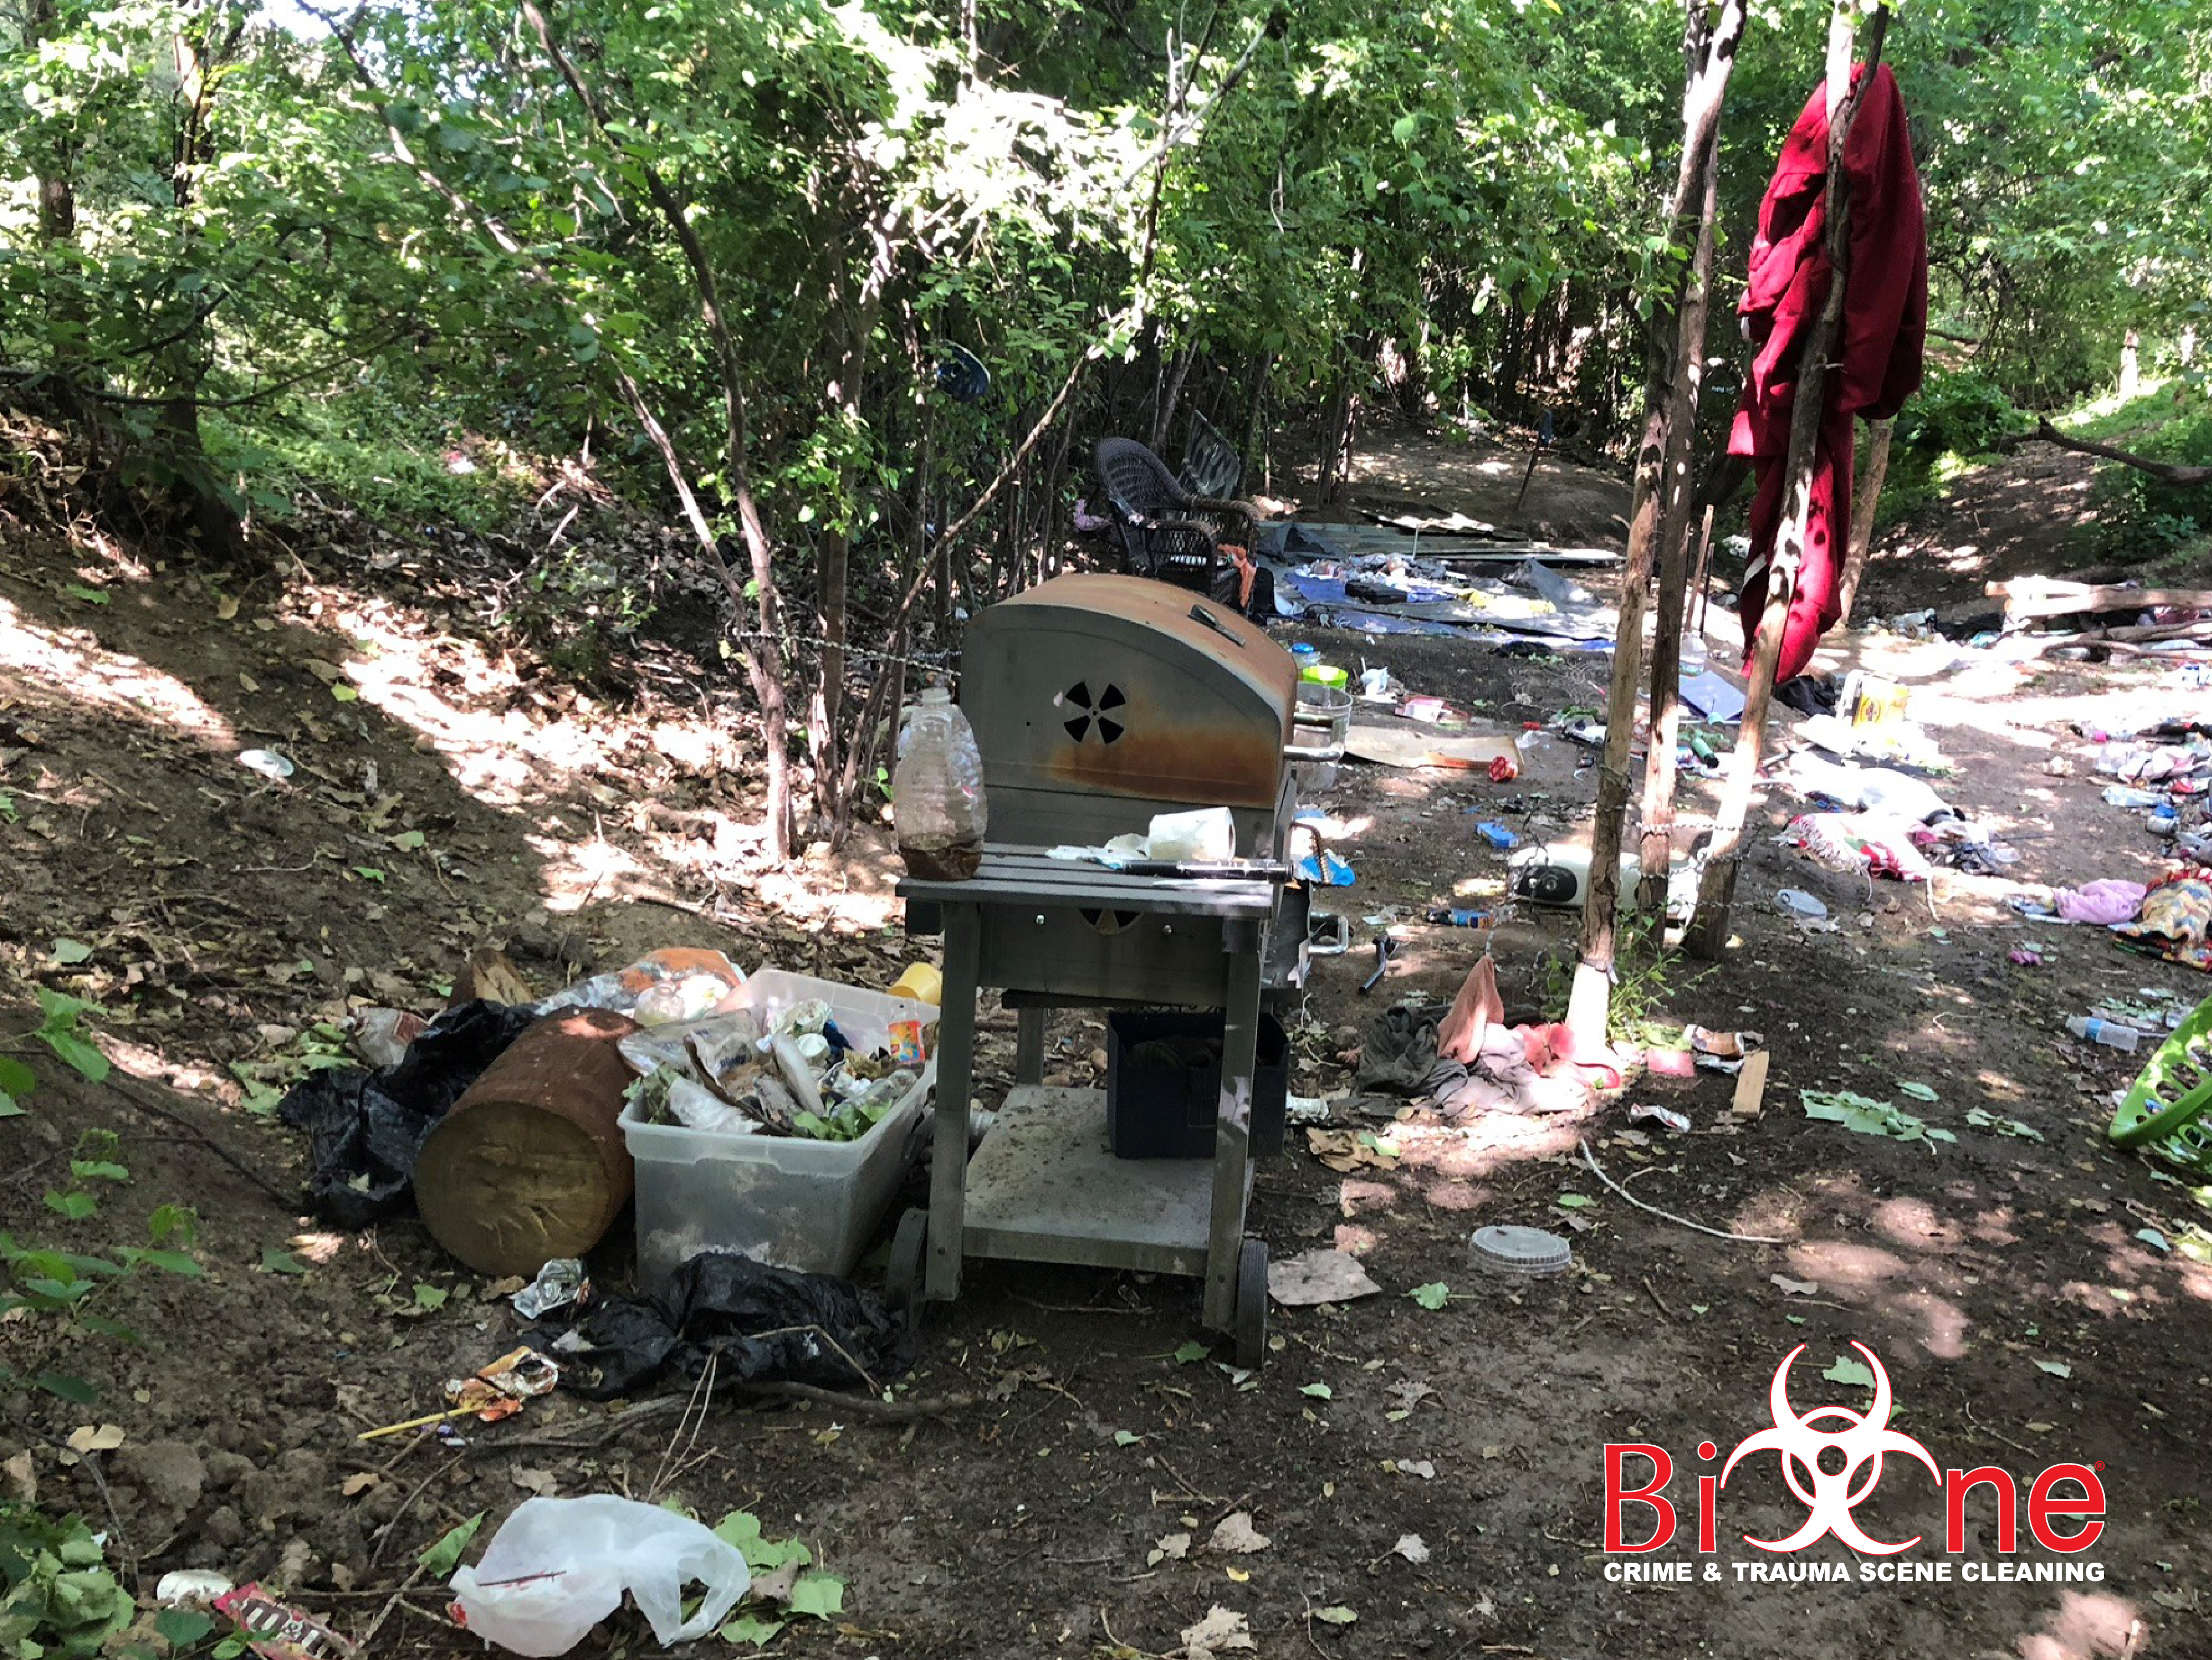 The improvised conditions where homeless encampments are set up can become a problem for property managers and business owners. Bio-One of Chula Vista can help you.